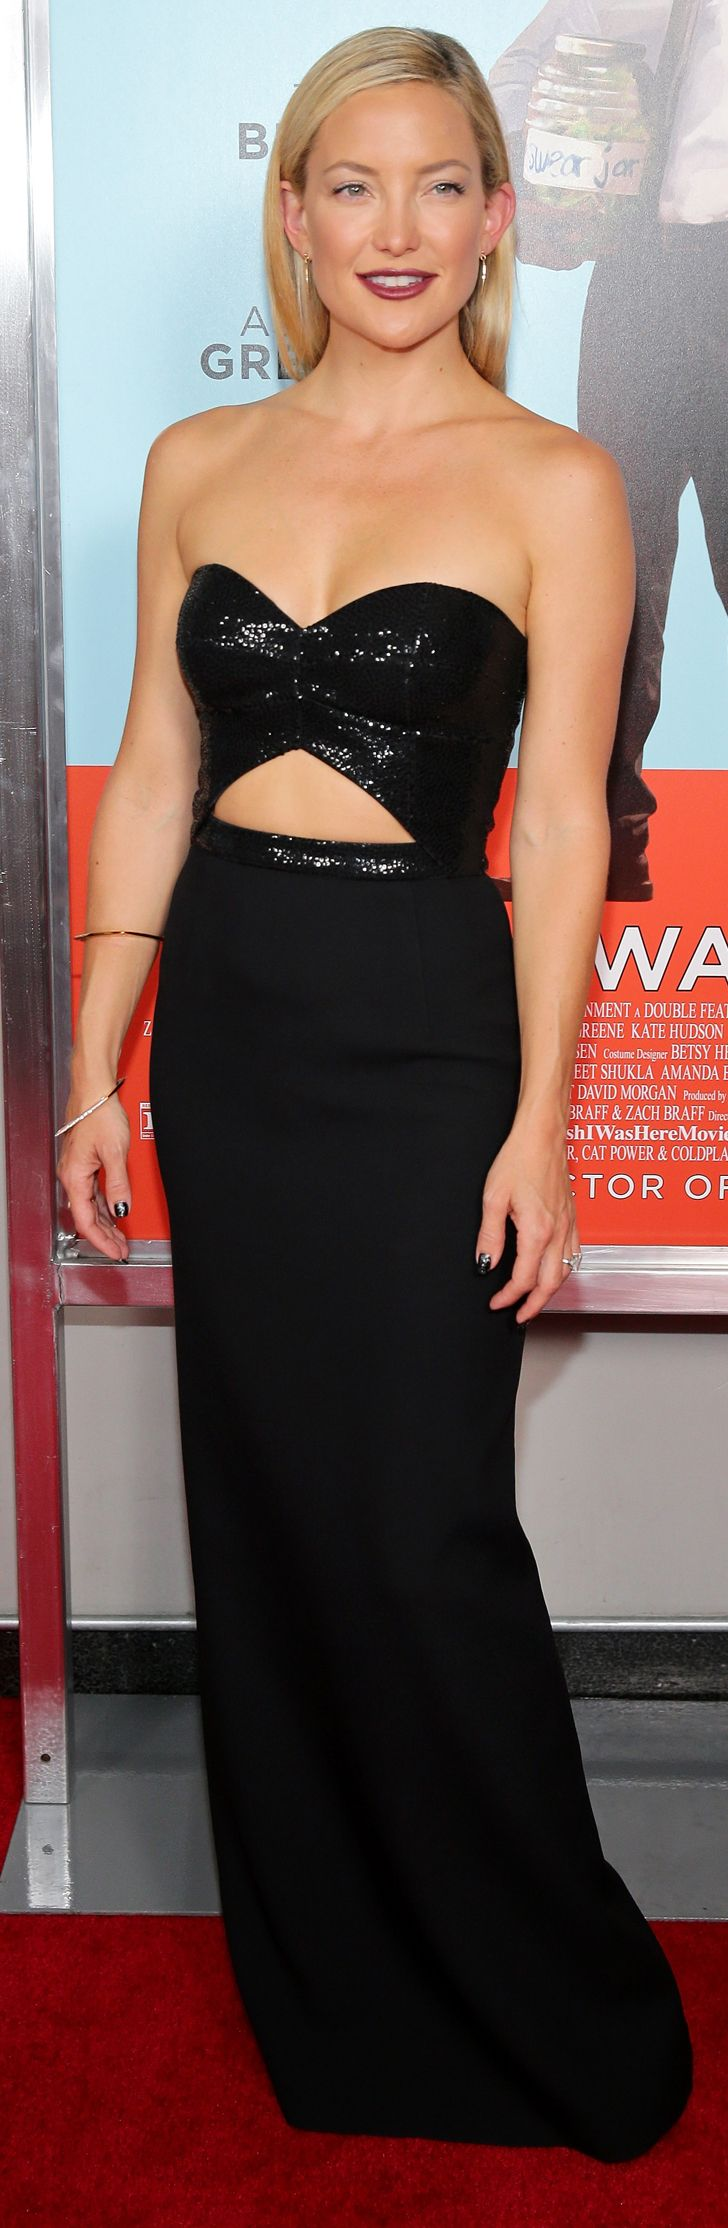 Celebrities Show Skin With Cutout Dresses